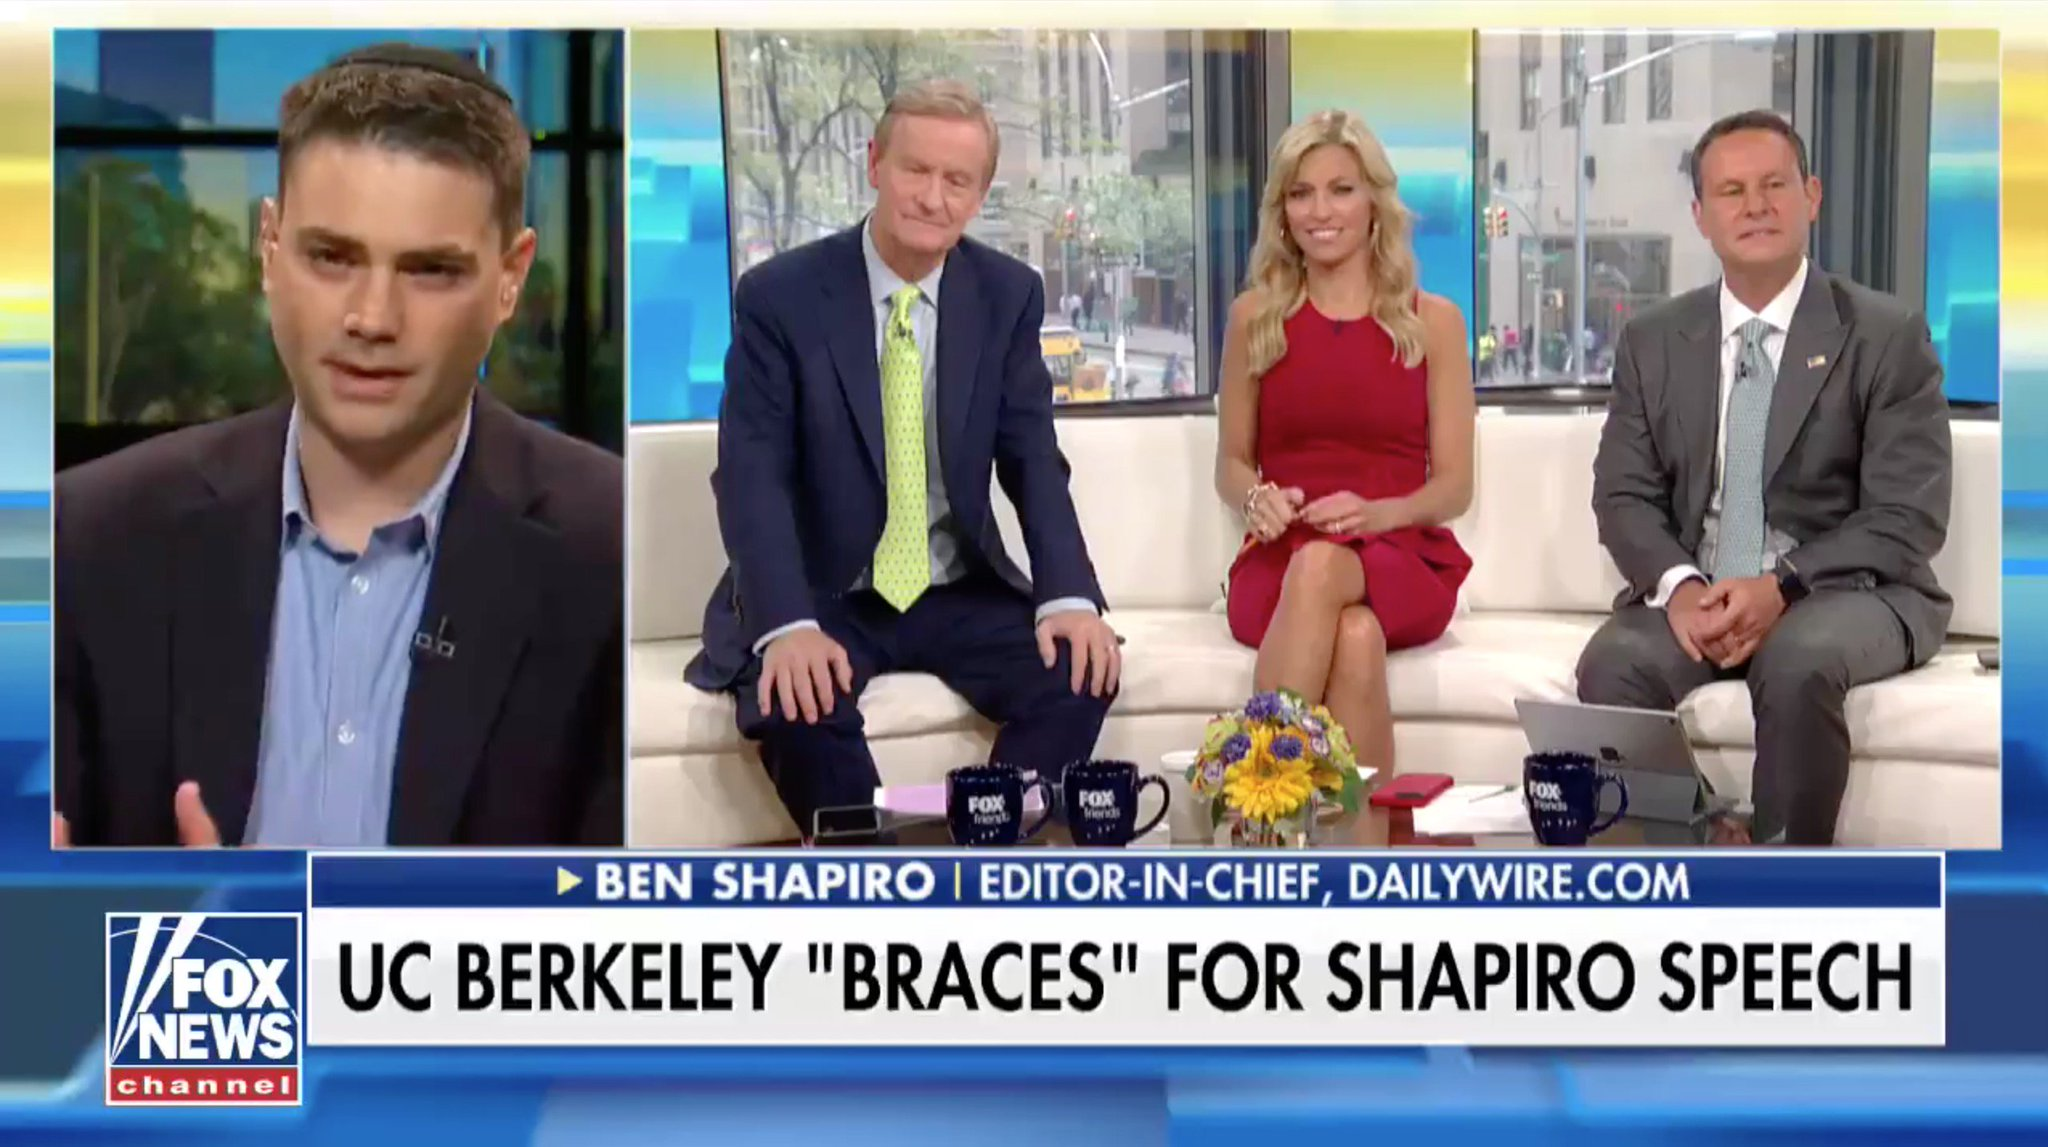 Ben Shapiro Declares The Left Doesn't Listen to Opposing Views…on Fox & Friends https://t.co/8Ja5C80bPl https://t.co/yTmiVZmraq